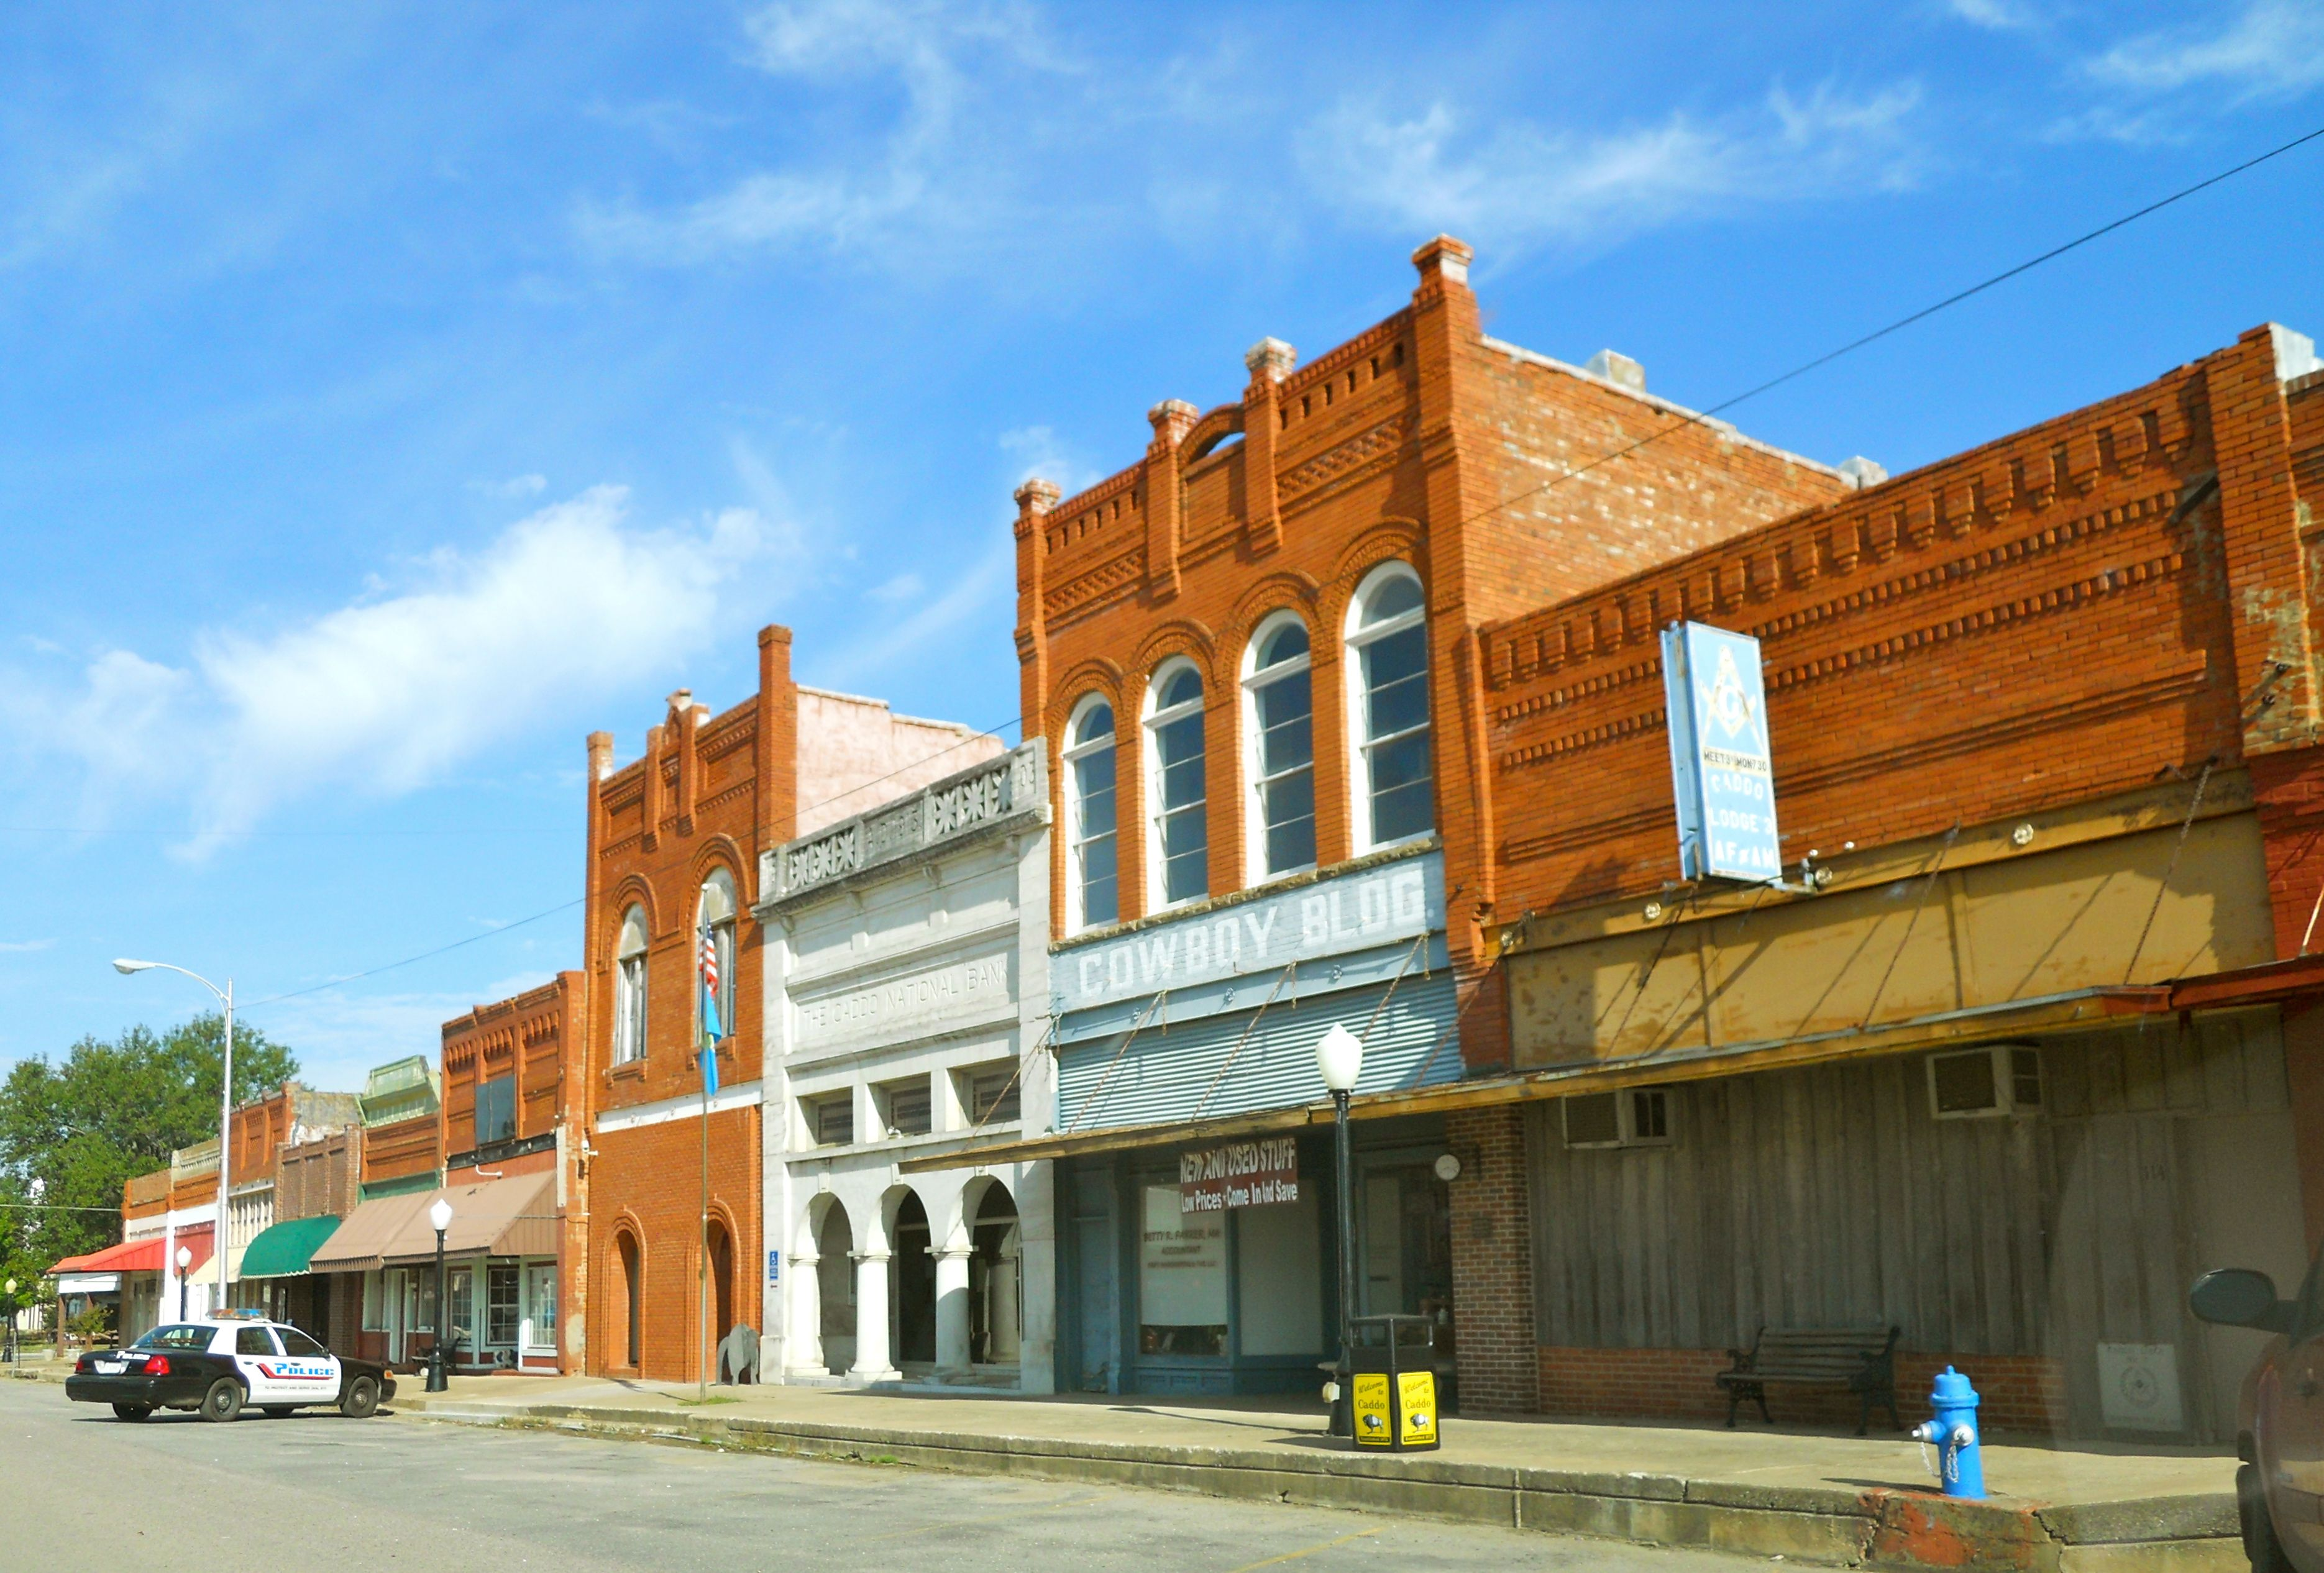 Busy Small Town Oklahoma Cool Photos Pinterest Small Towns